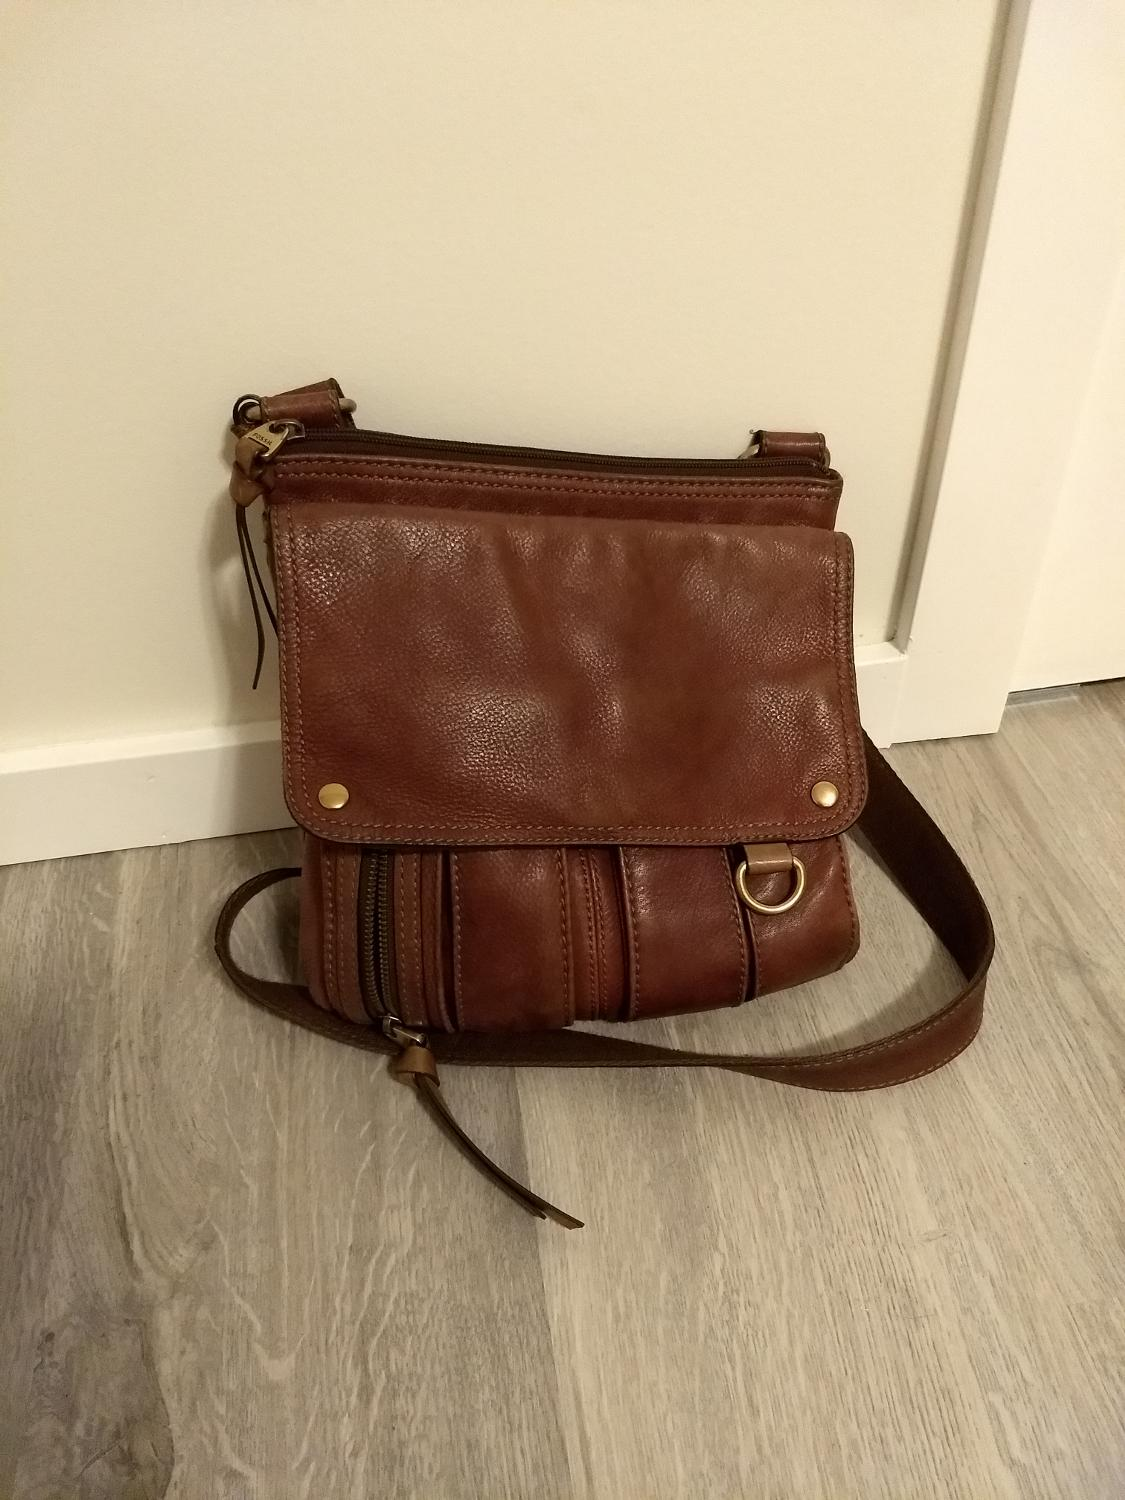 73e9459cfdbd Find more Fossil Crossbody Bag for sale at up to 90% off - Saanich ...